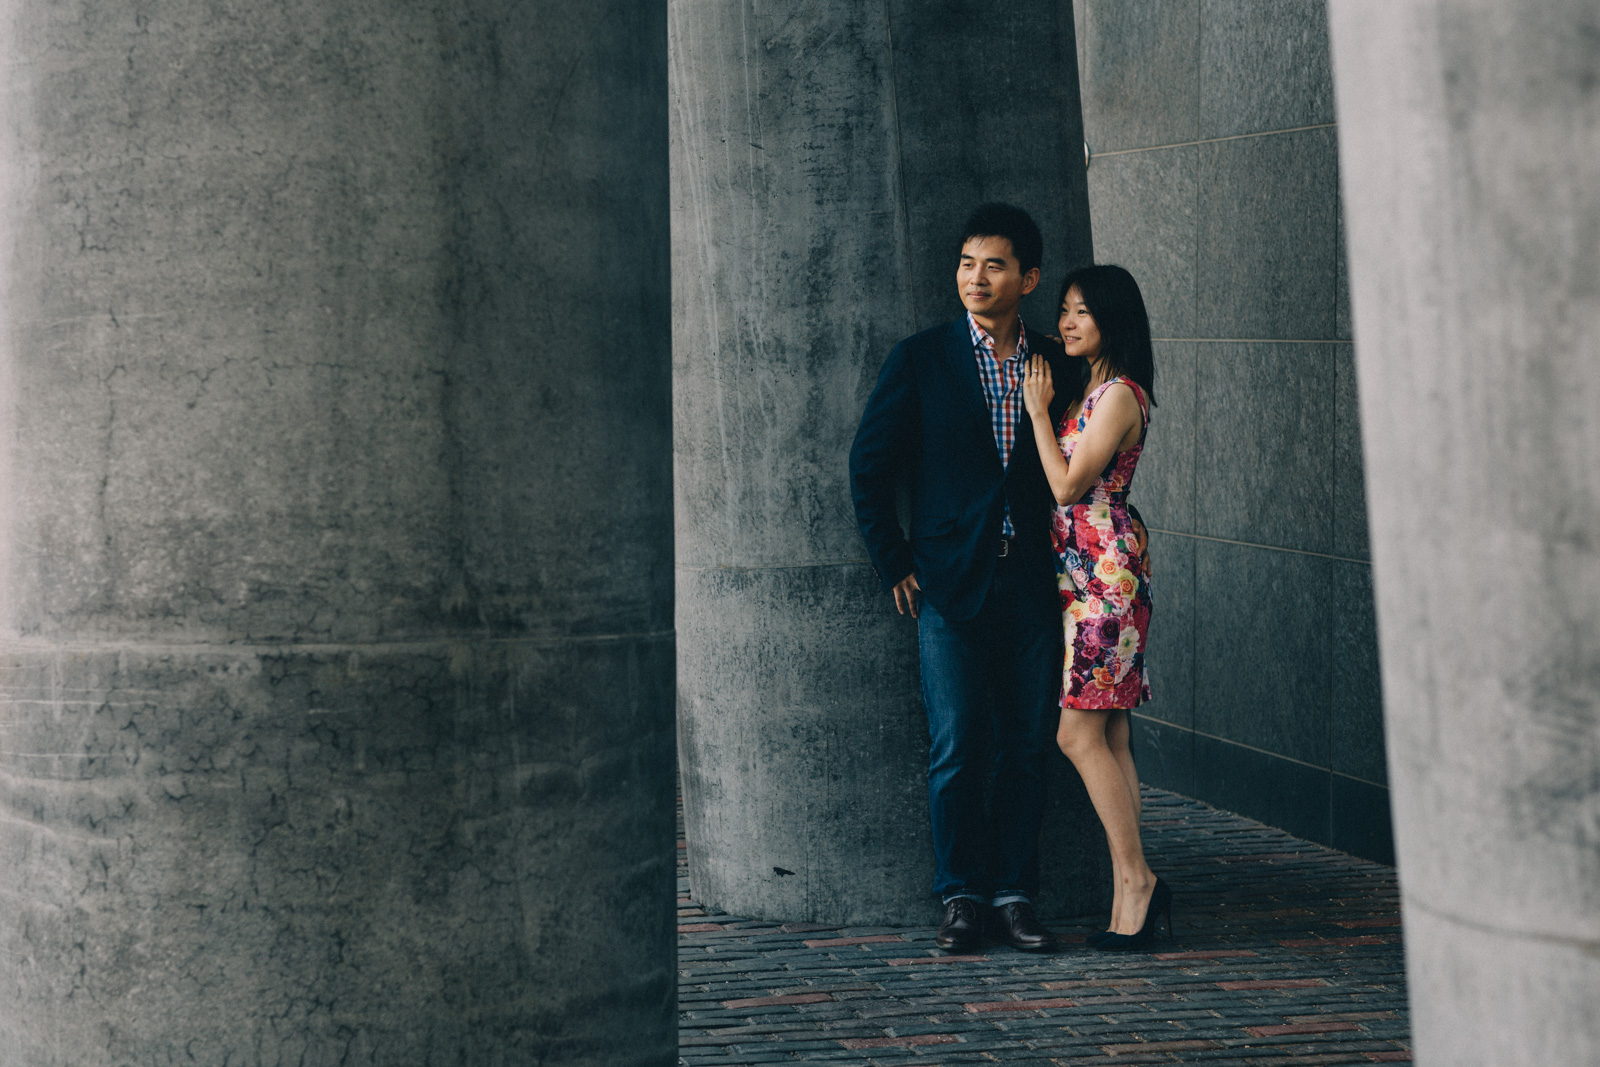 distillery-district-engagement-photos-toronto-wedding-photography-by-sam-wong-of-artanis-collective_007